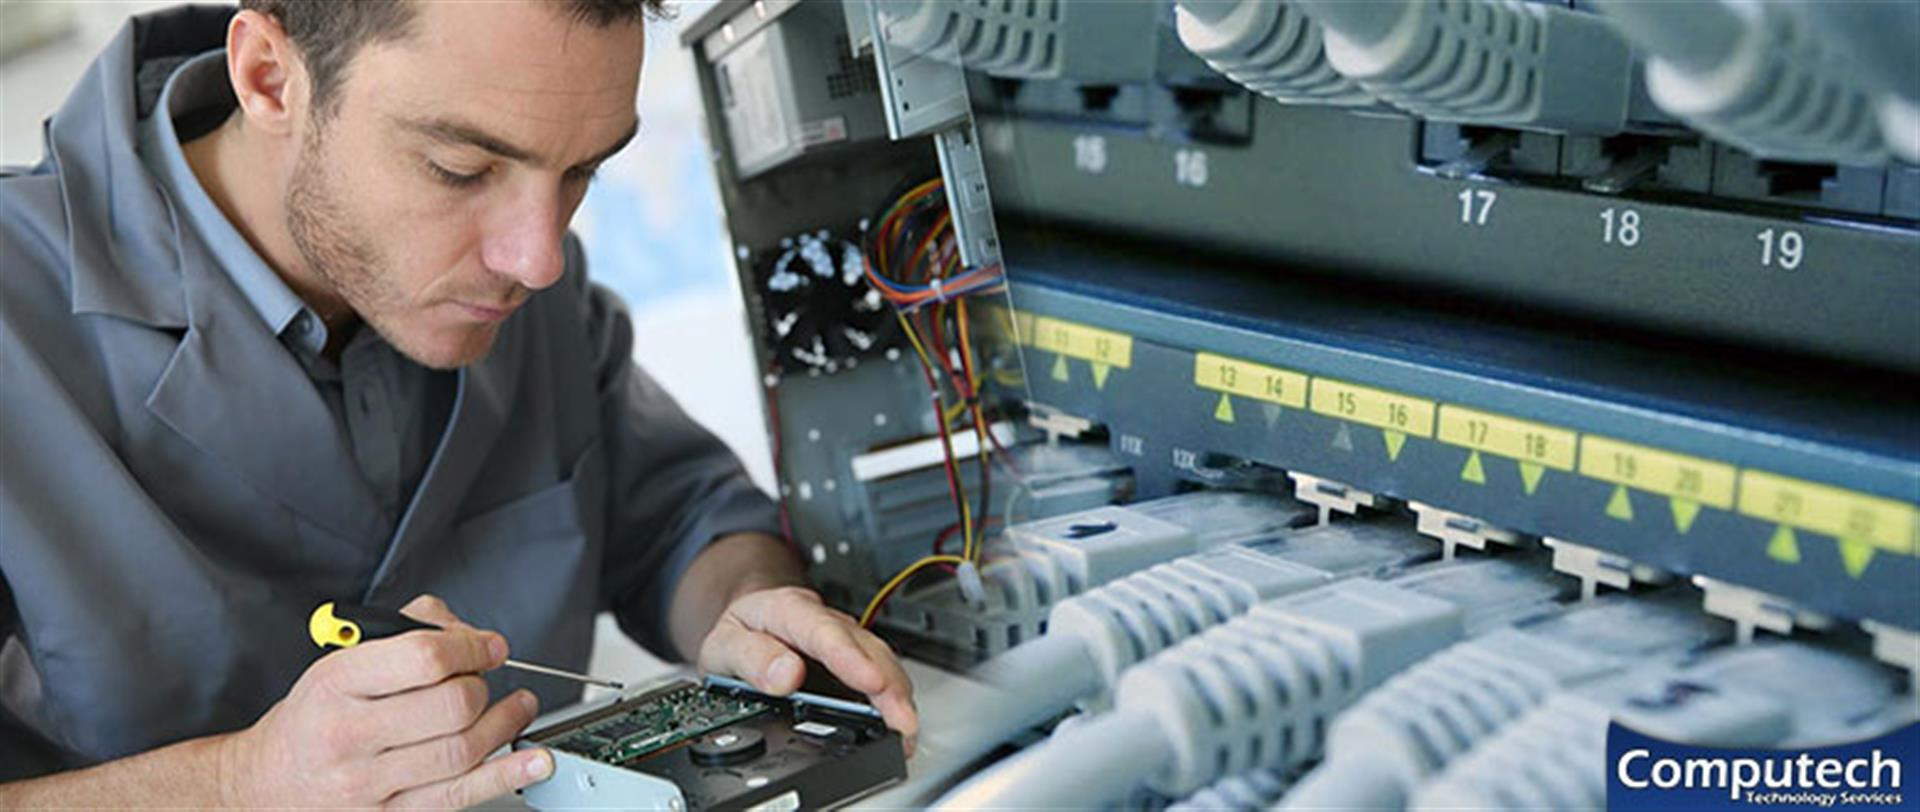 Marion Alabama On Site Computer & Printer Repair, Networks, Telecom & Data Cabling Solutions